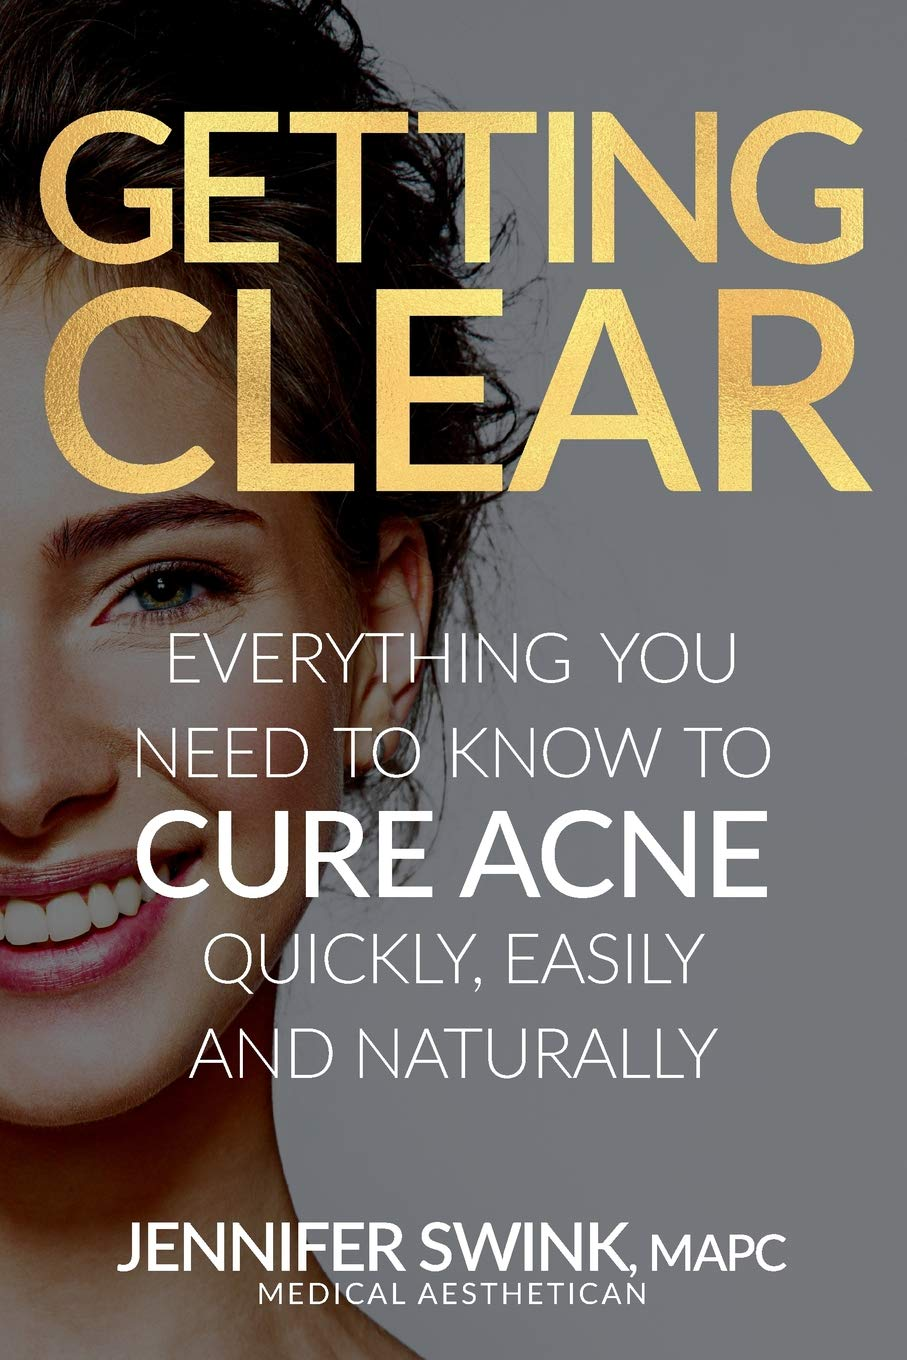 Getting Clear Everything Quickly Naturally product image